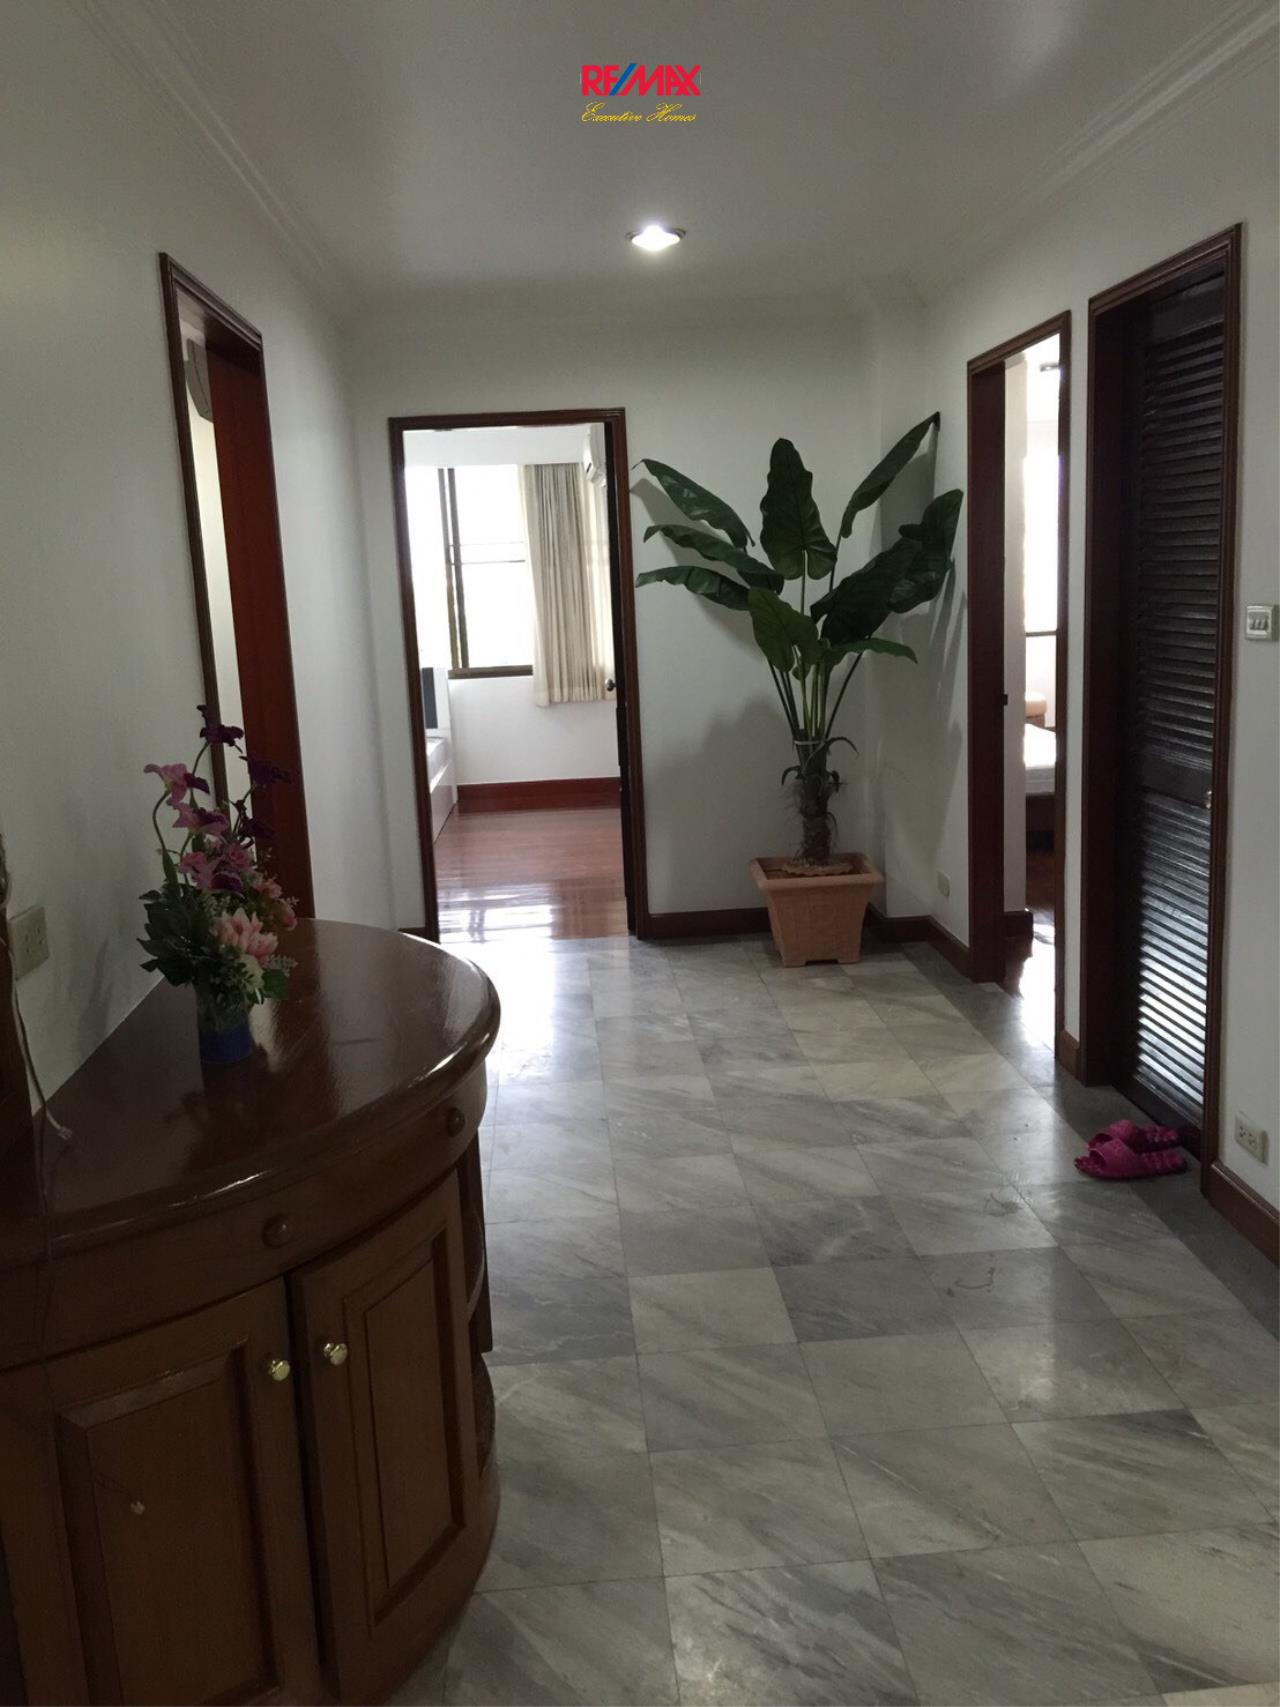 RE/MAX Executive Homes Agency's Nice 3 Bedroom for Rent Acadamia Grand Tower 6